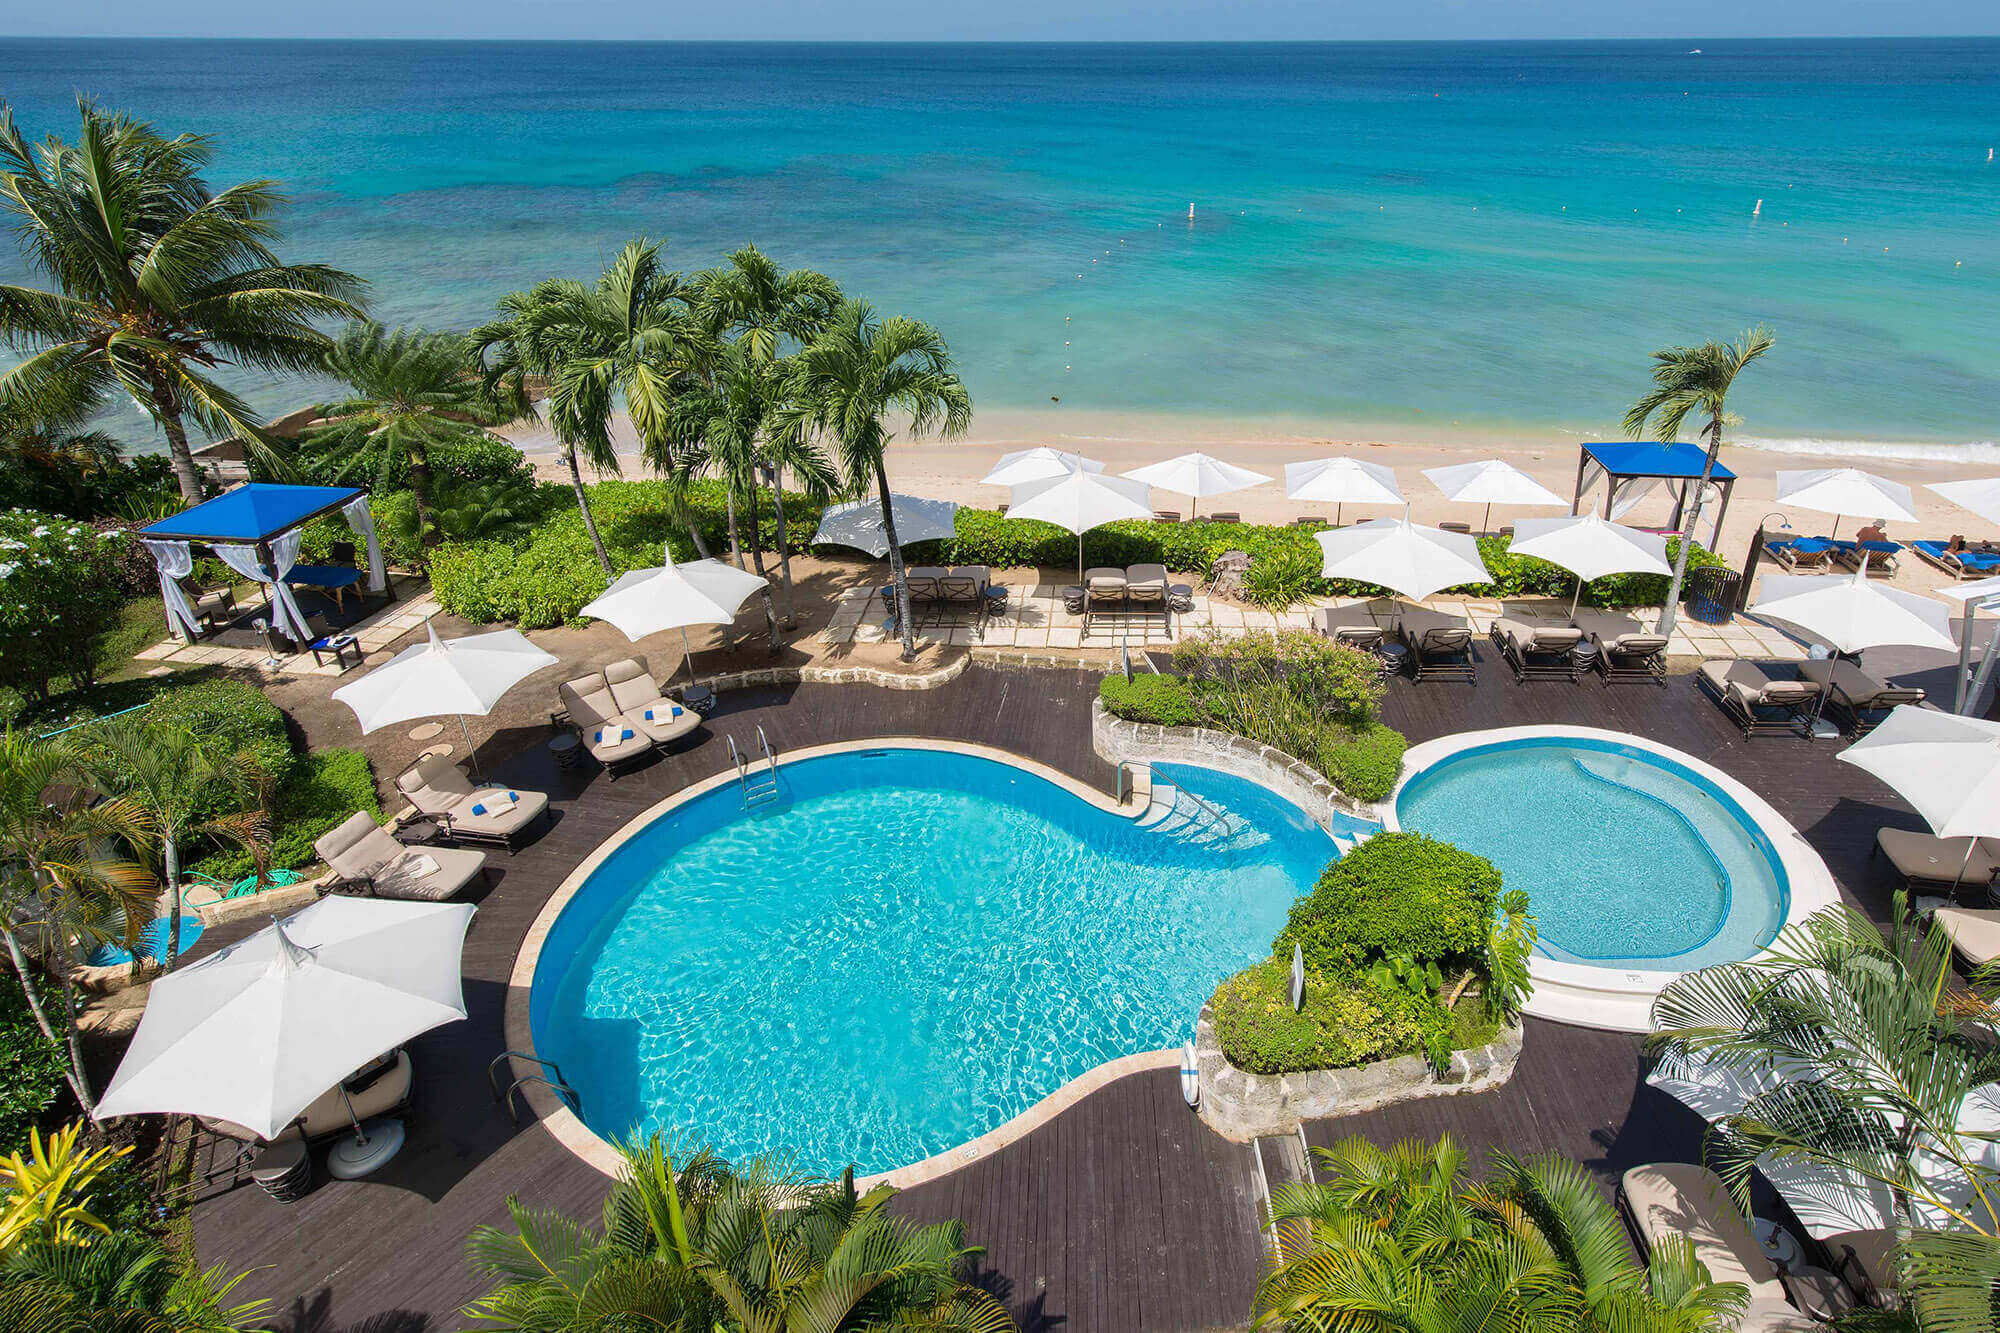 Barbados The House lekkert boutique hotell kun for voksne